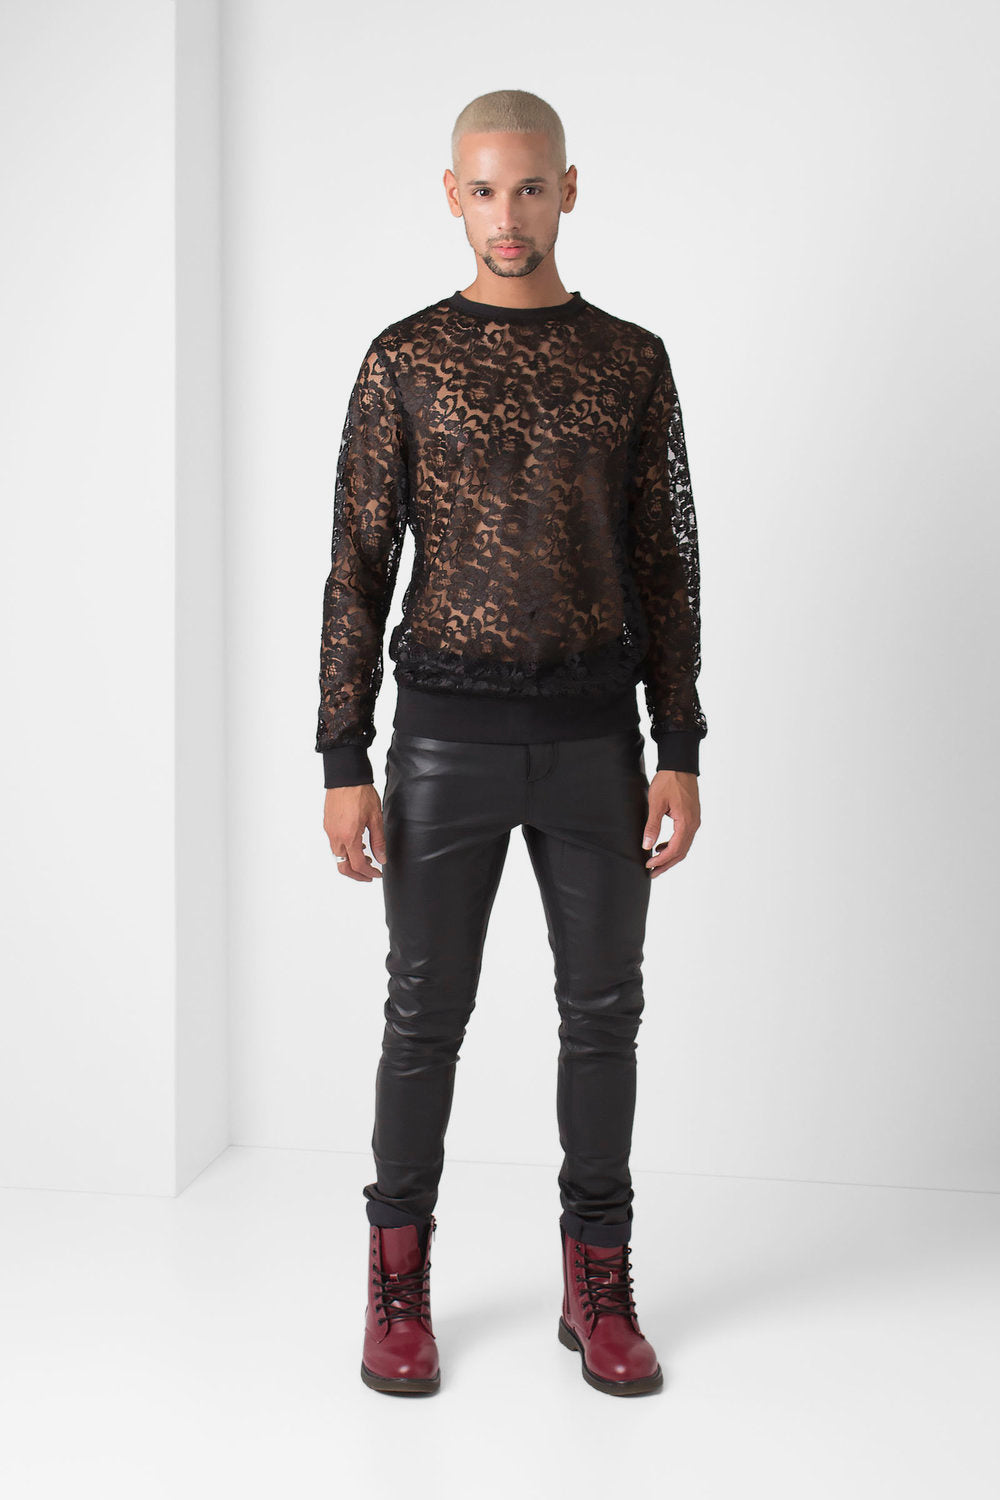 Black Lace Pullover - pacorogiene